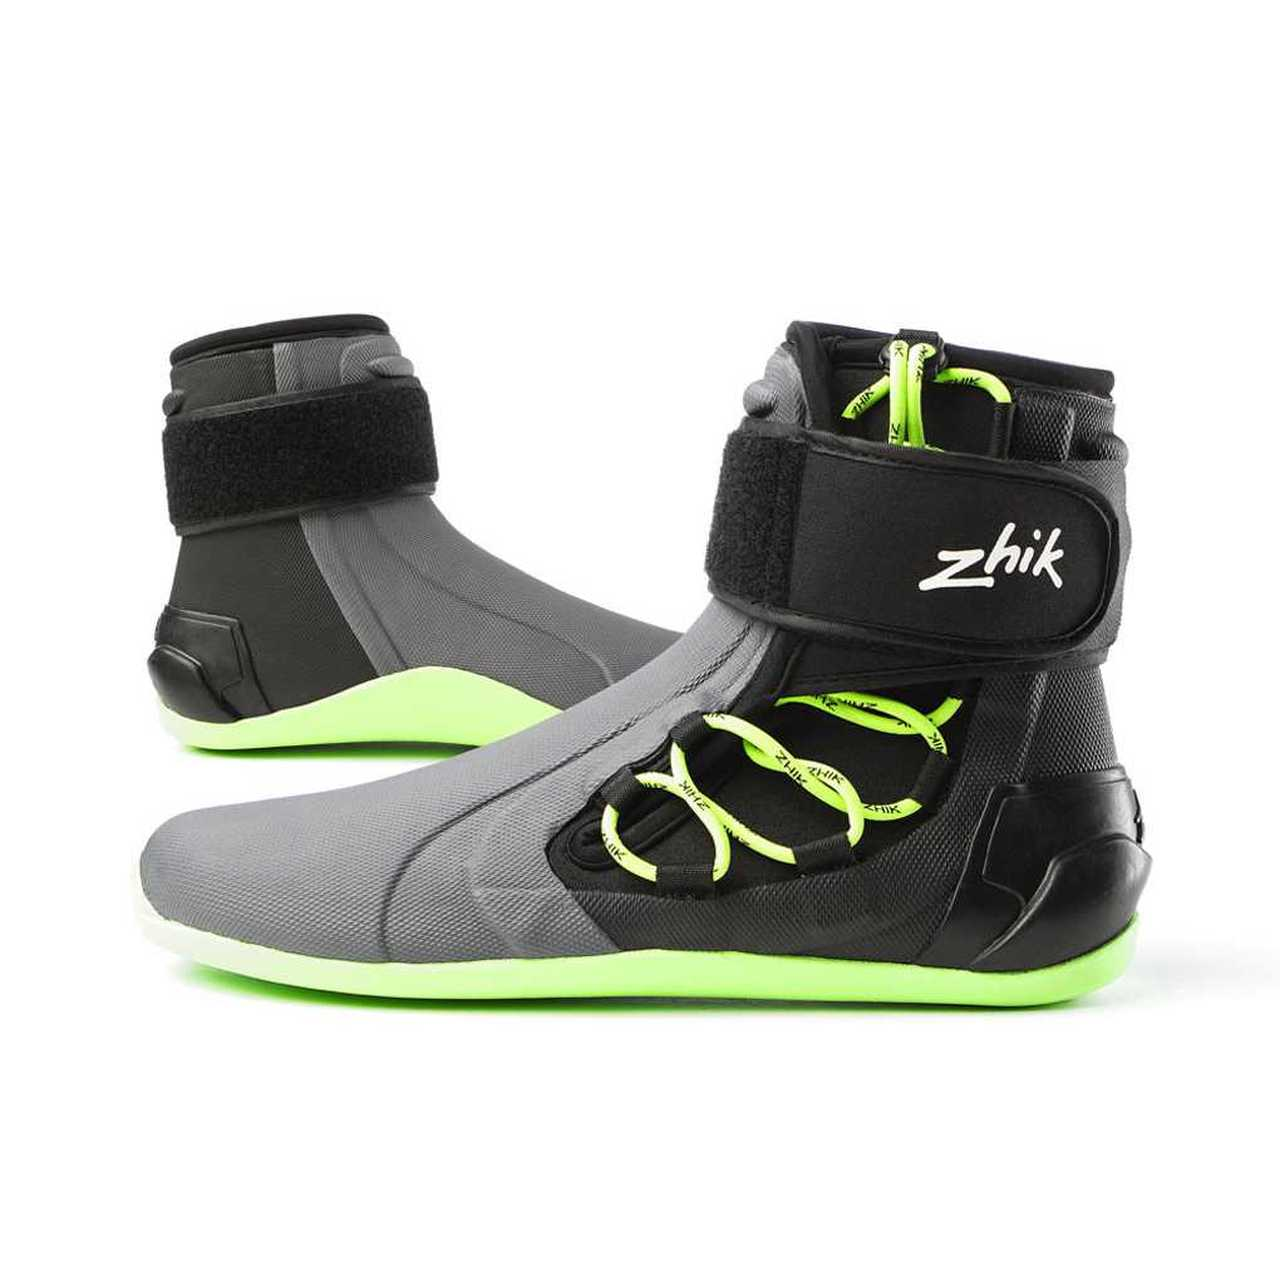 Zhik High Cut Dinghy Sailing Boot